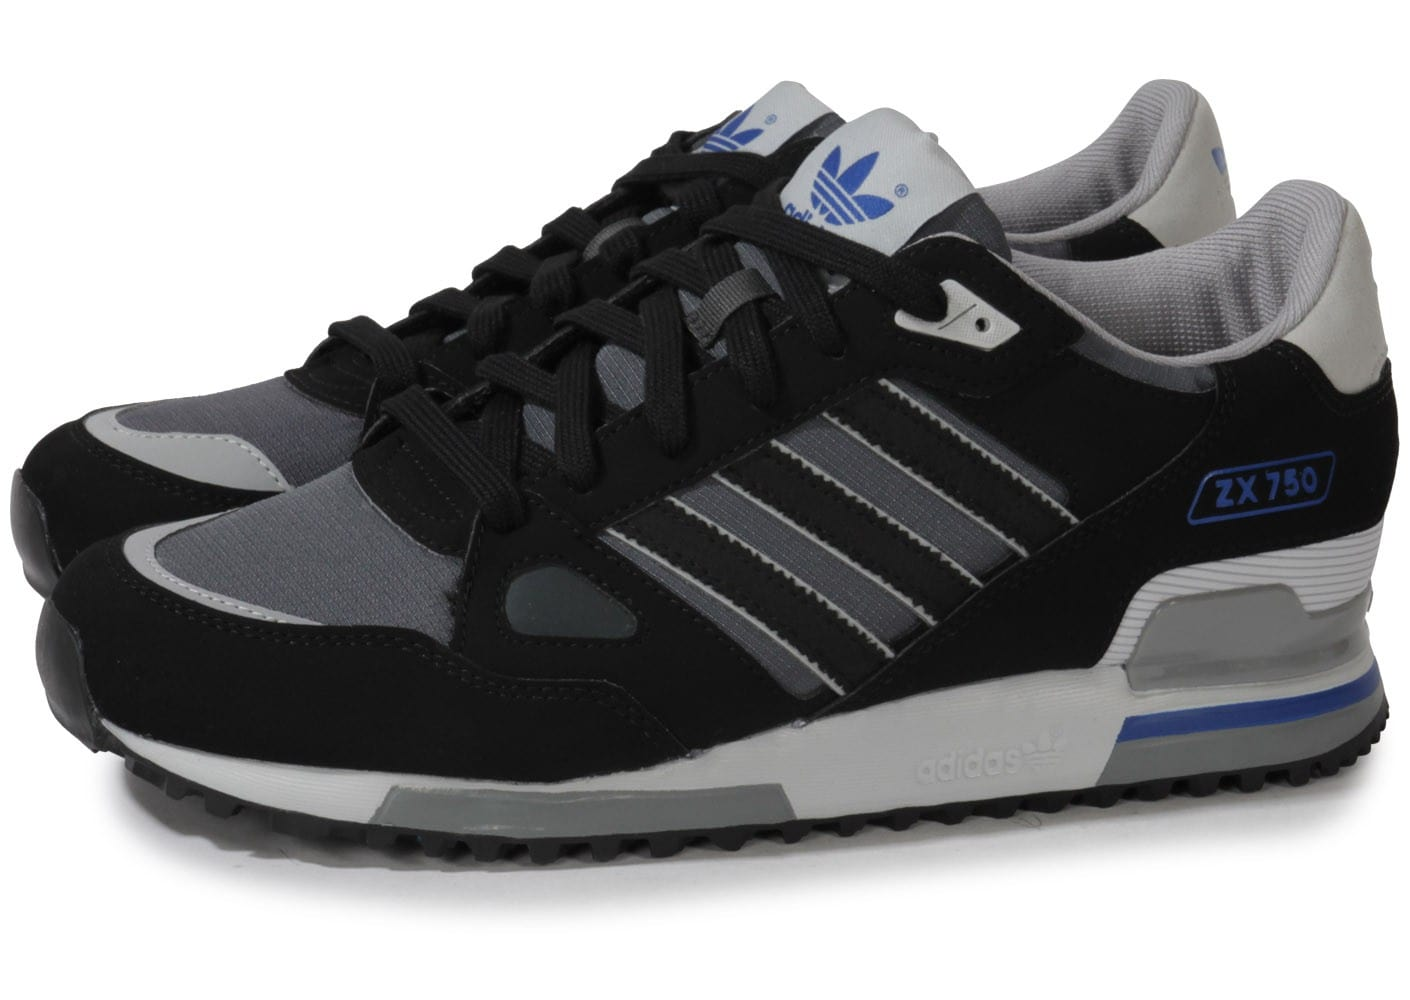 Adidas Chaussure Zx 750